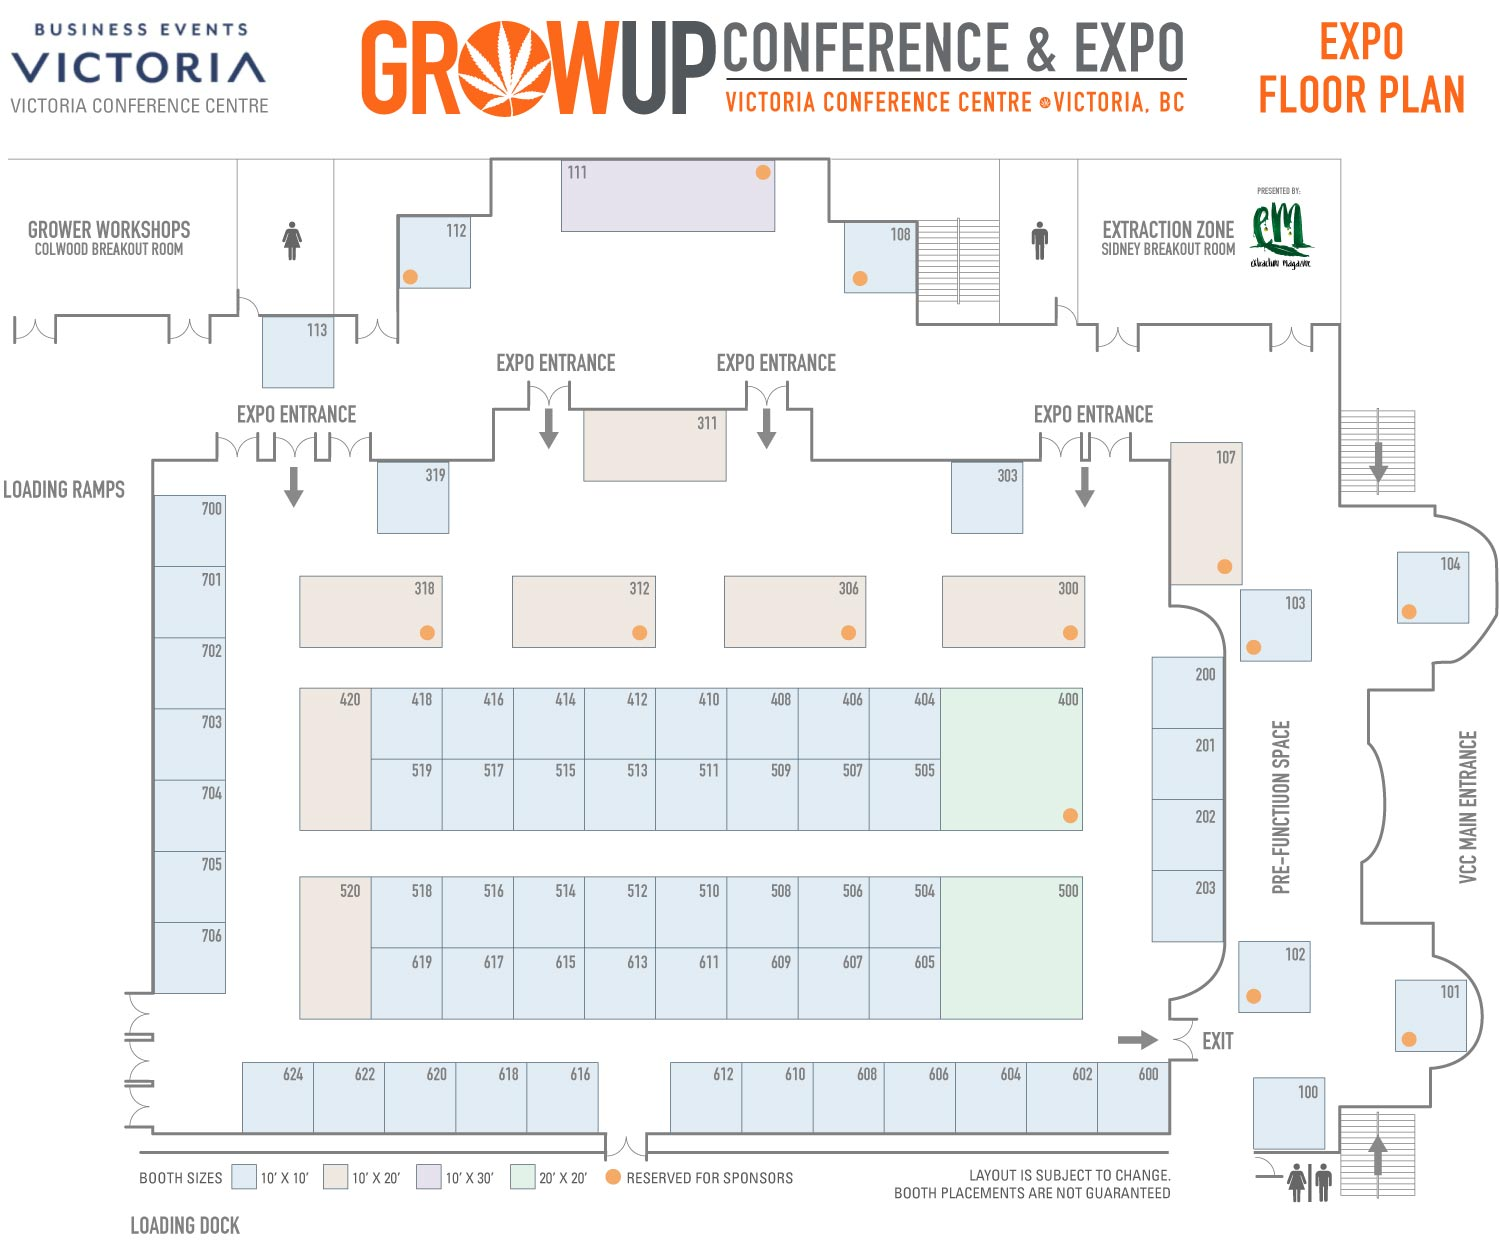 Grow Up Expo Floor Plan, May 31 - June 2, 2021 Victoria BC